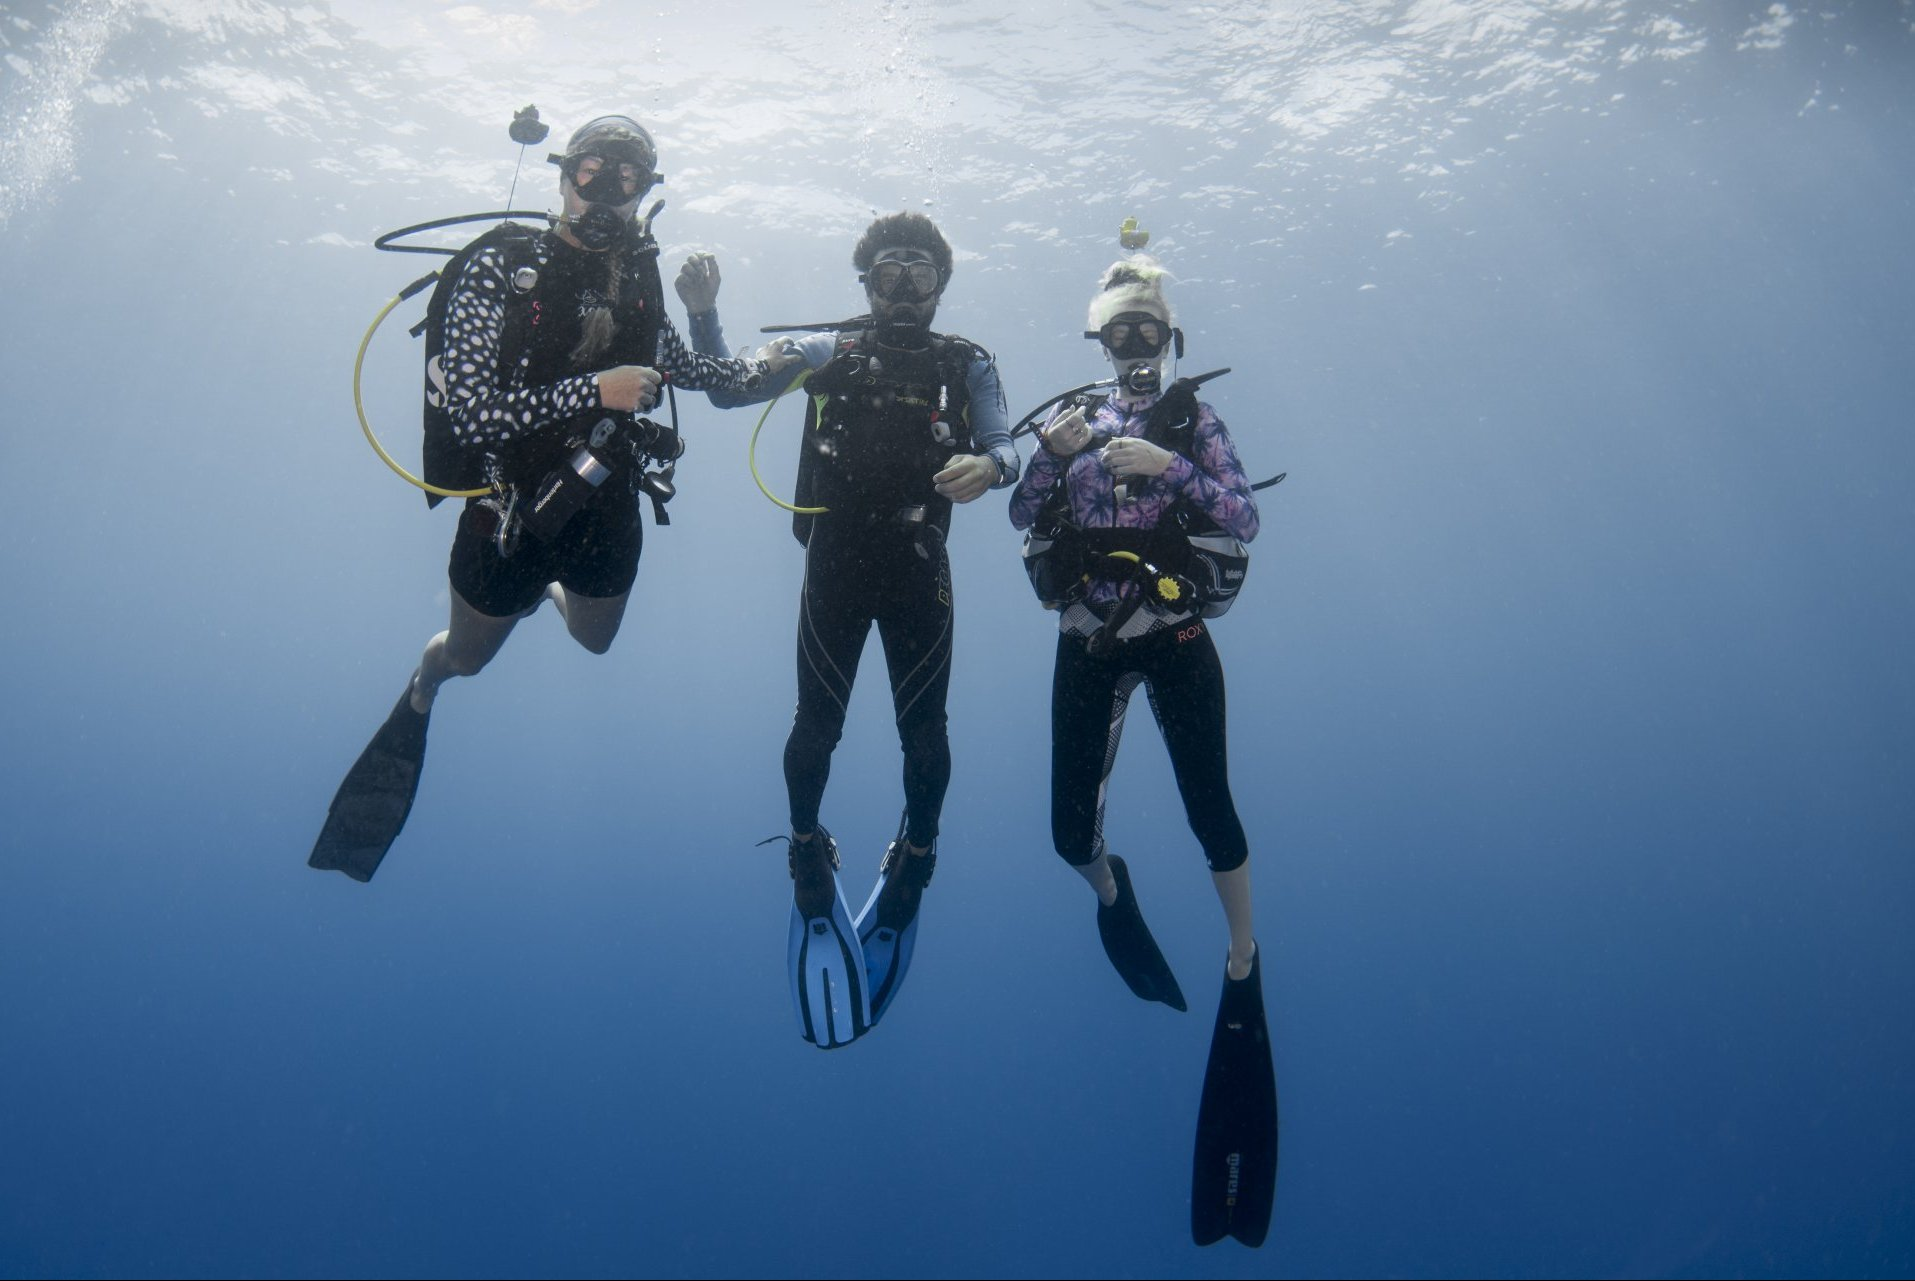 Ausbildungs Angebote Kurs Kombinationen Course Promotion Dive Training sale Specialty